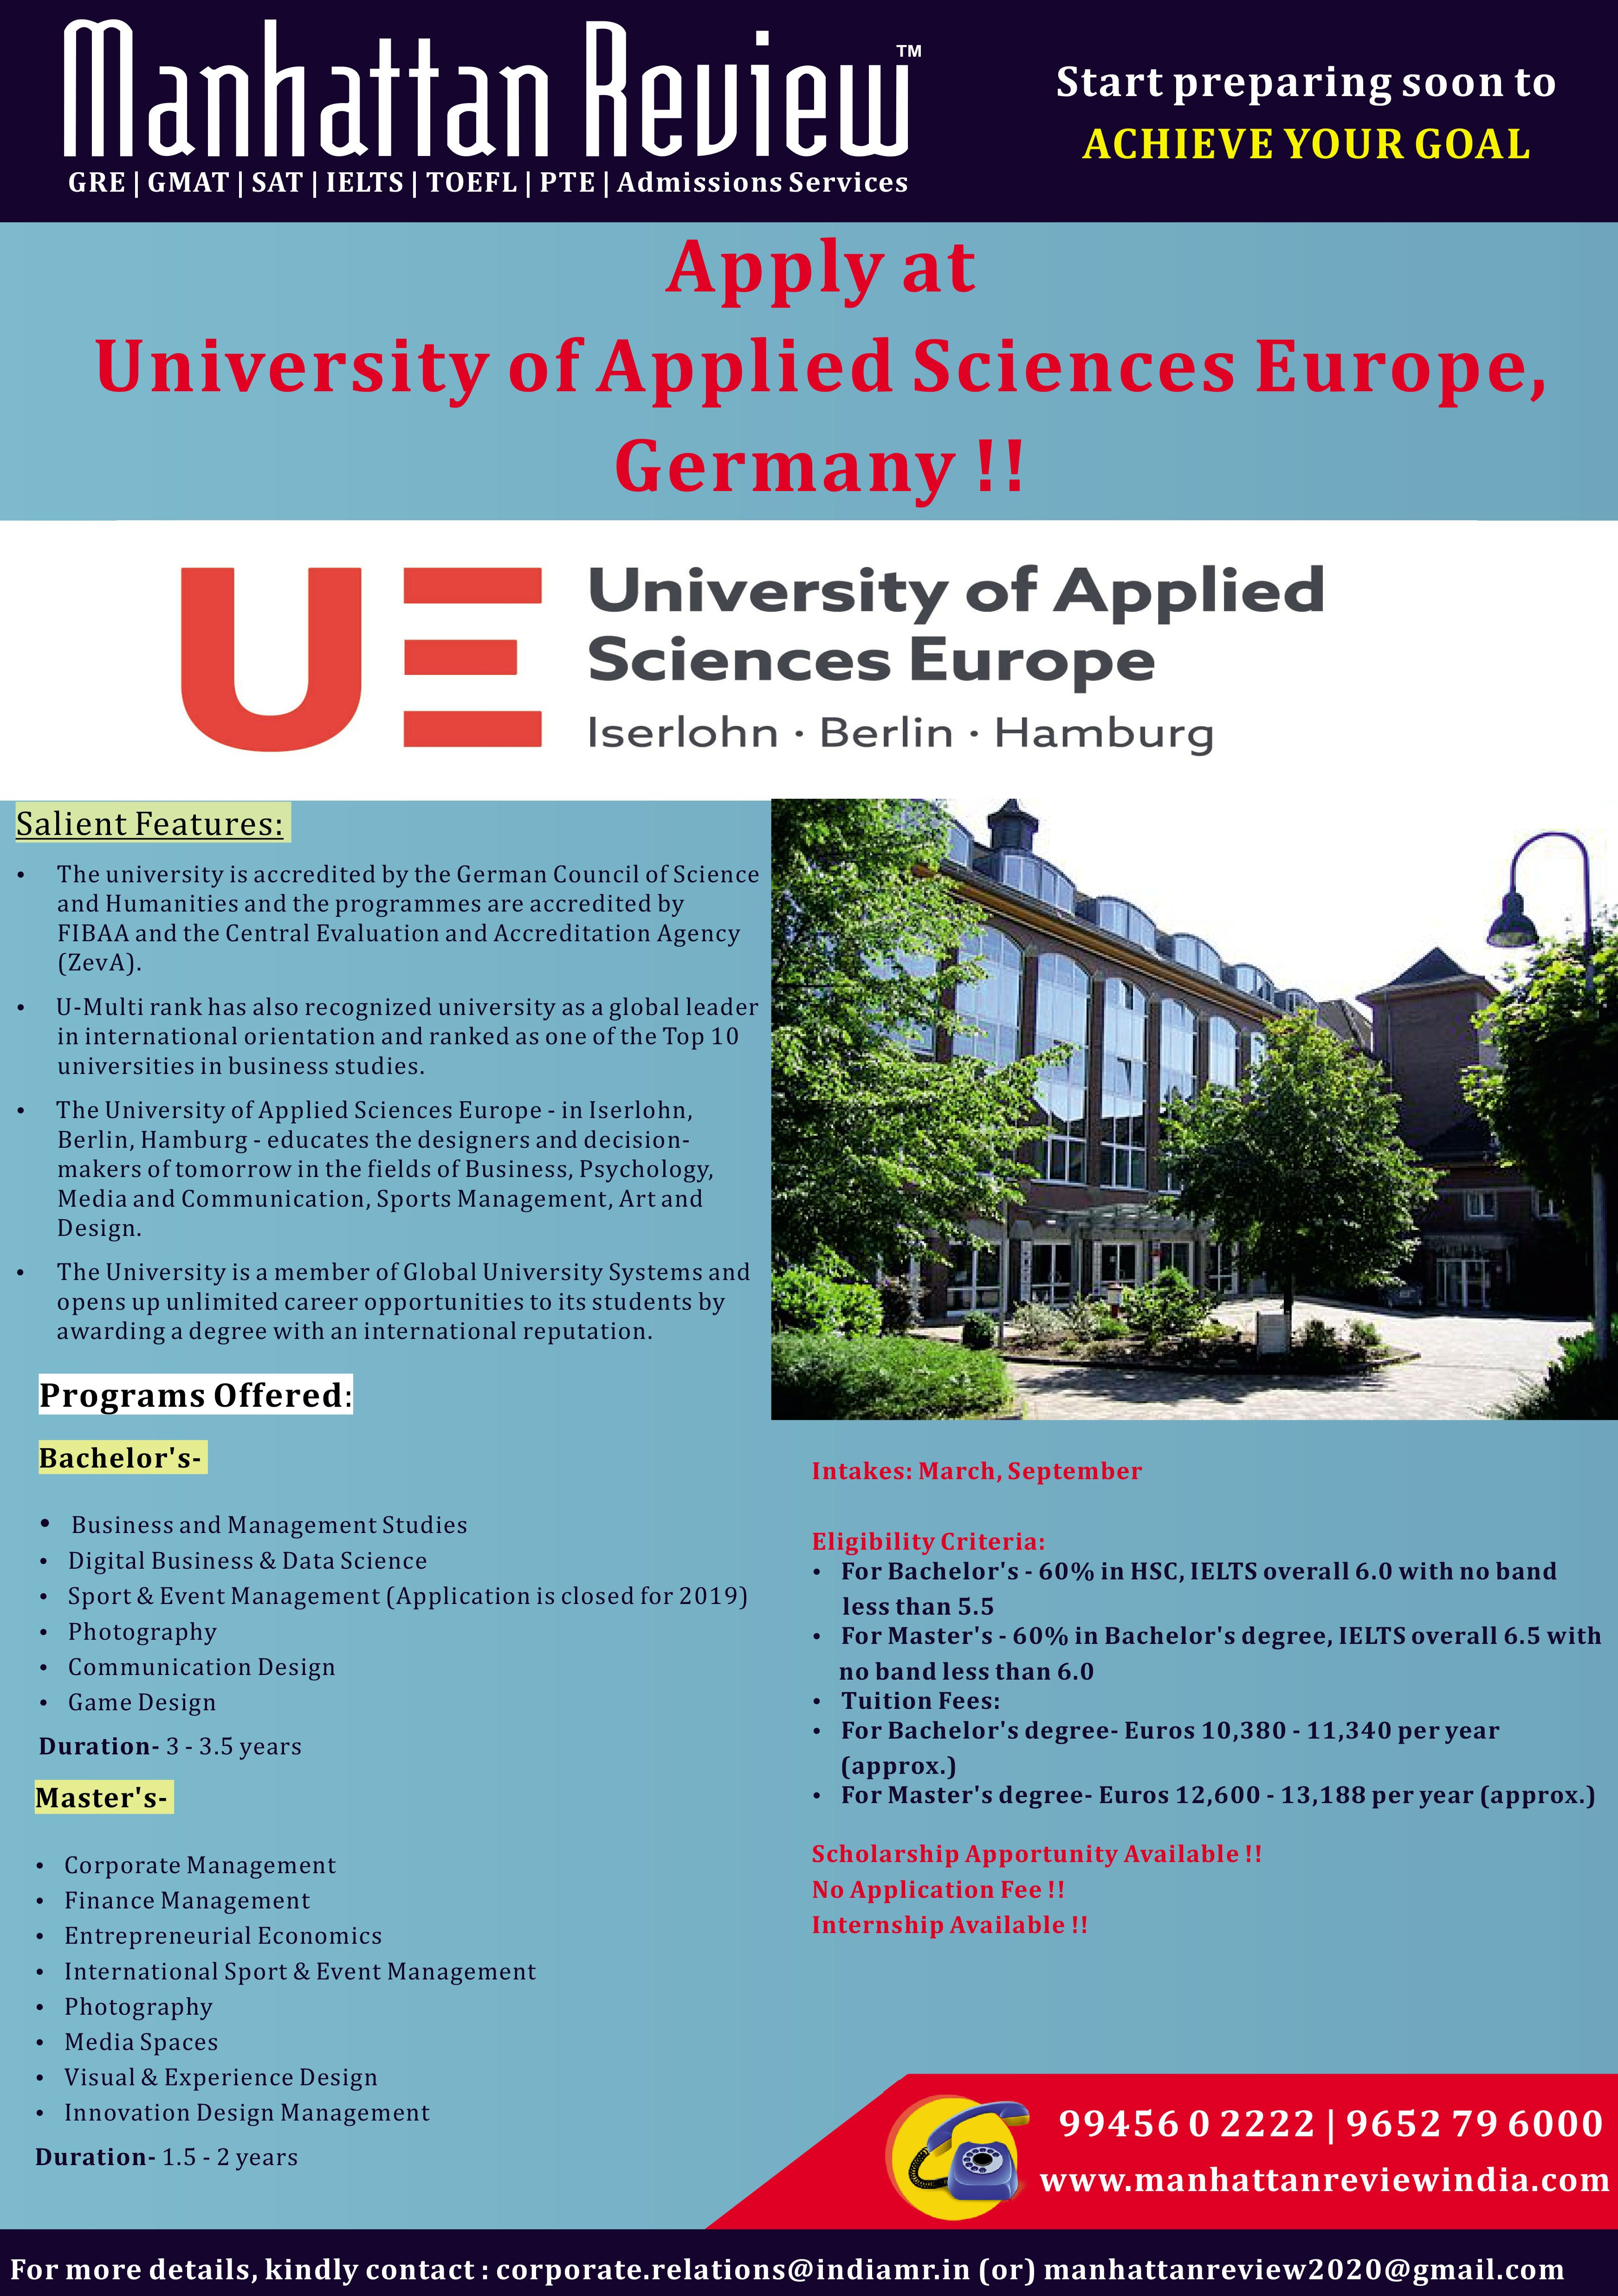 Study In University Of Applied Sciences Europe Germany Admissions Are Accepting For March 2020 Intake Call Us To 9945602222 Applied Science Gmat Gmat Prep